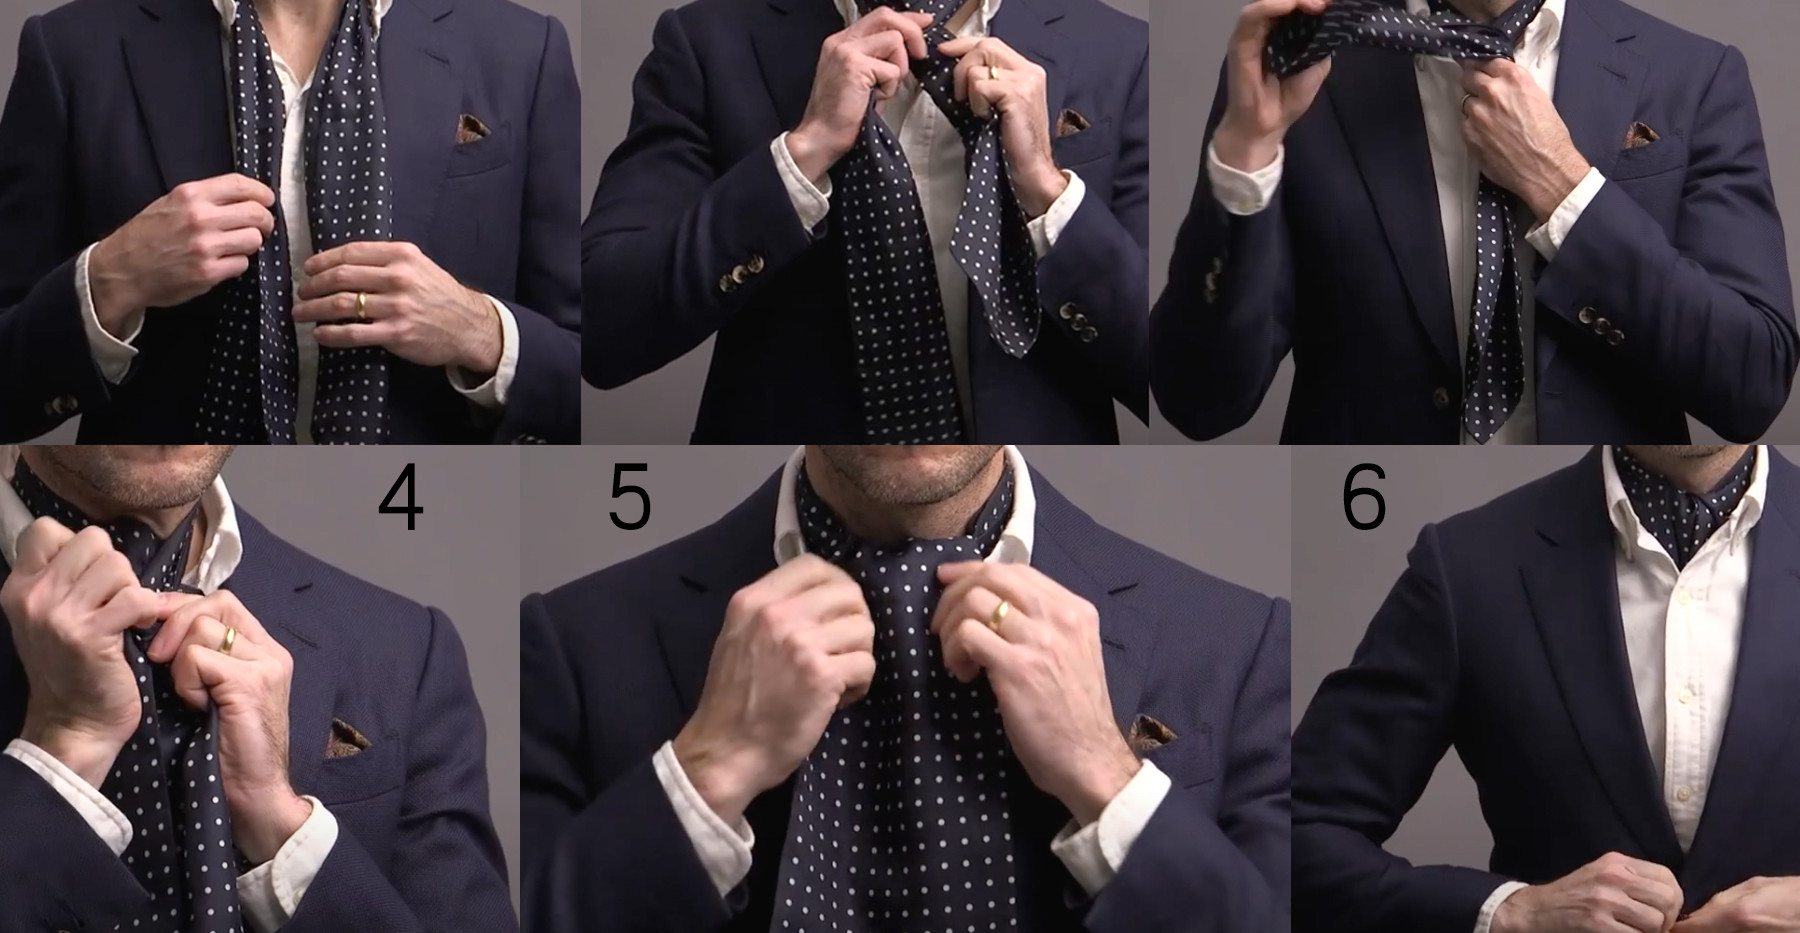 Ascot Tie Knot-How To.jpg